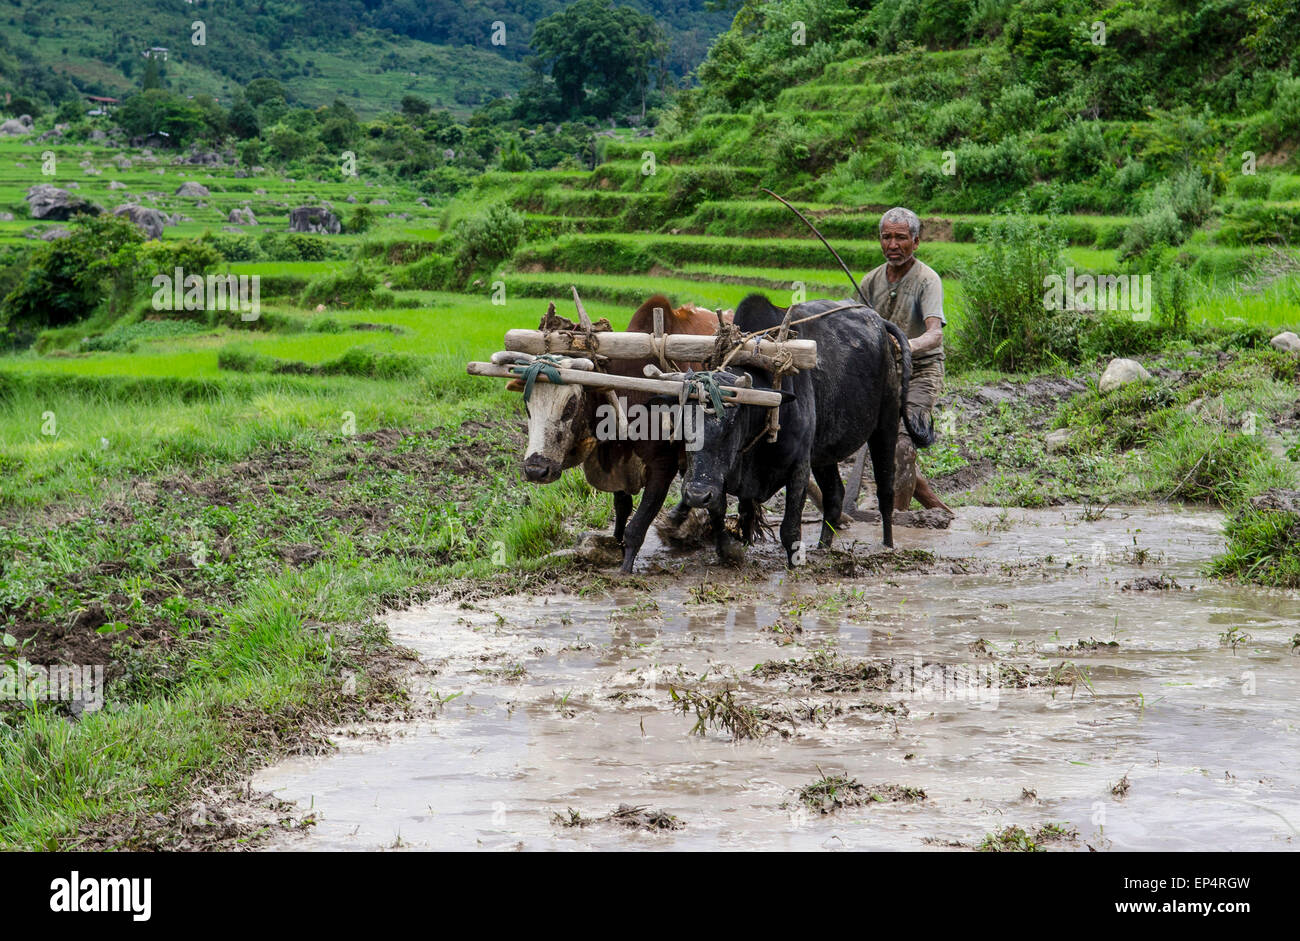 Ricefarmer with oxes in Bhutan - Stock Image